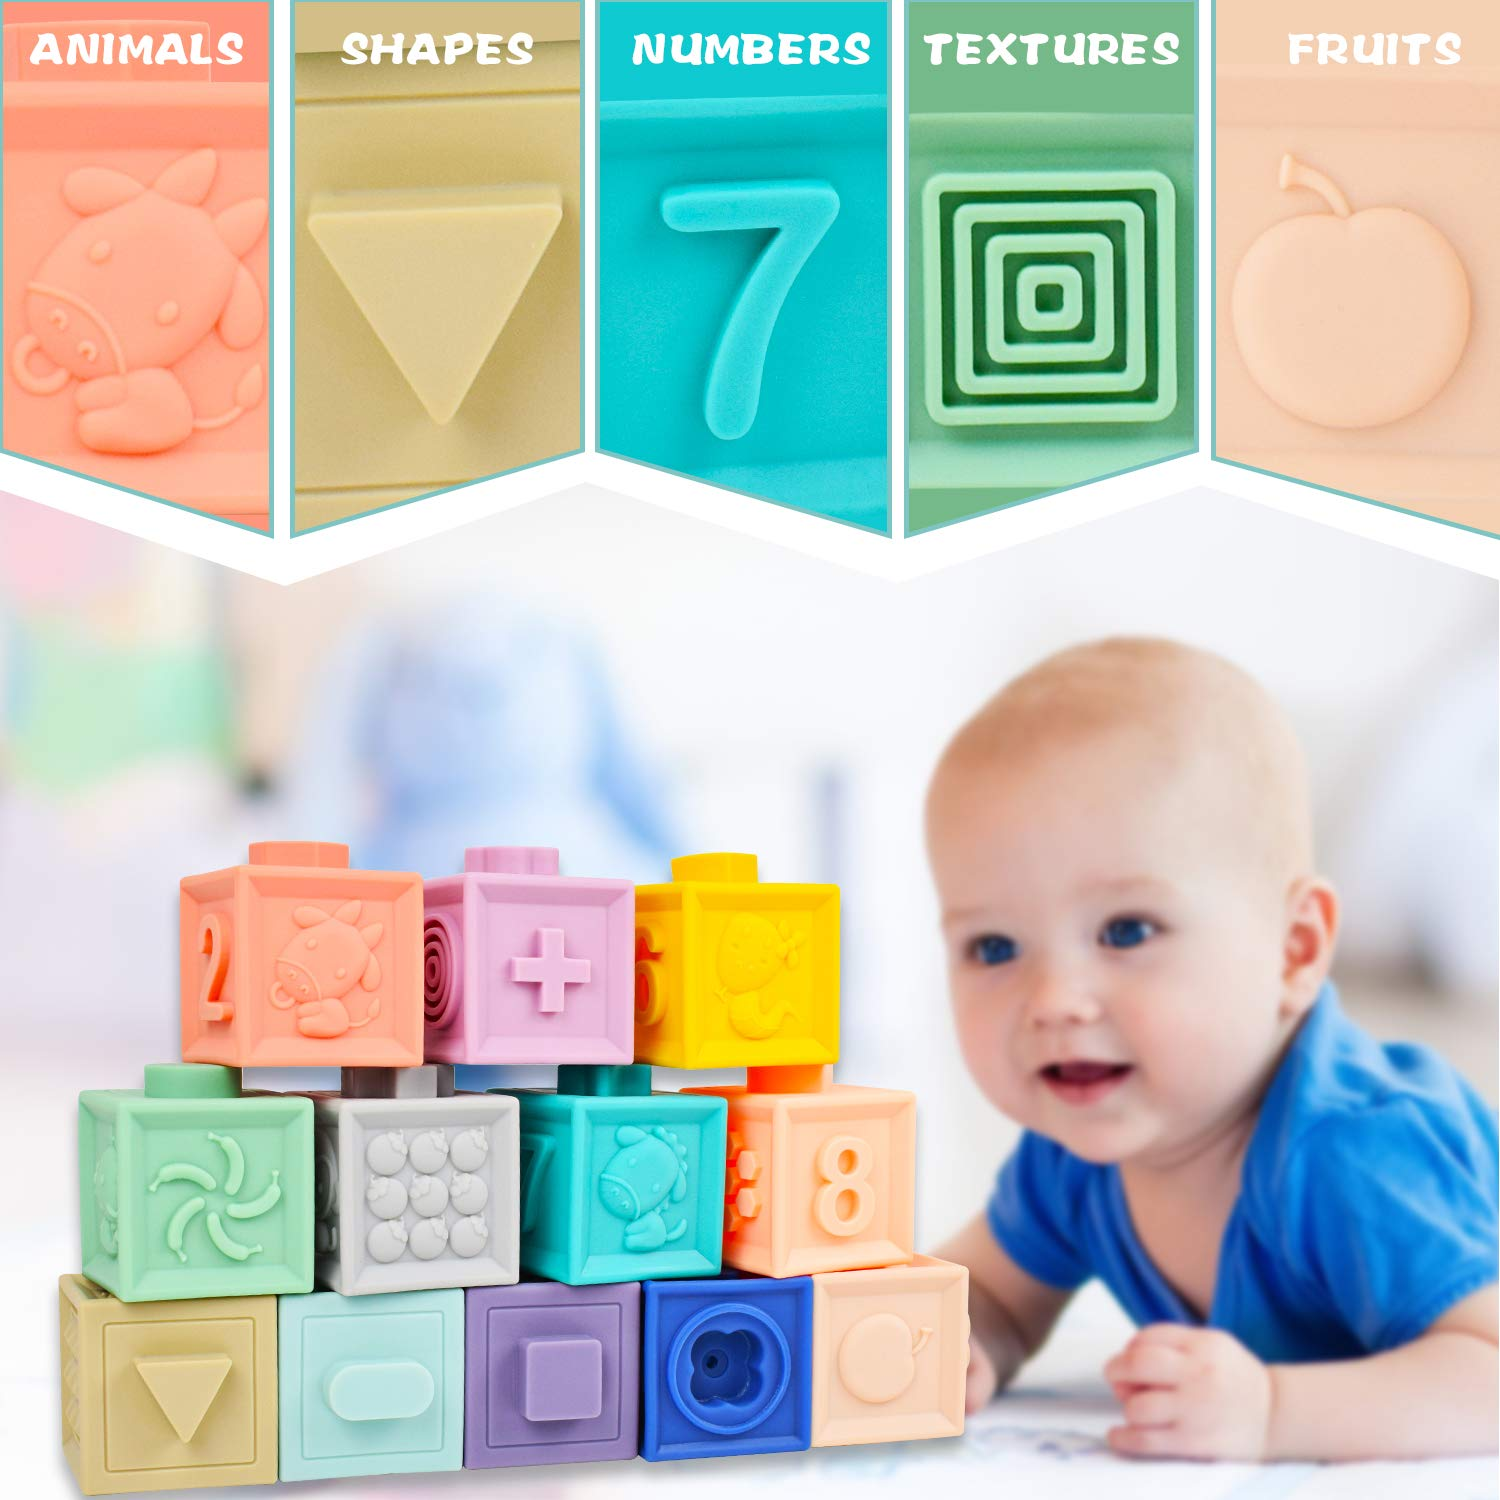 Soft/ Blocks for Babies 6 Month Baby Toys/ Teething Toys/ Infant Toys Baby Building Blocks/ Montessori Developmental Toys with Numbers Animals Shapes for Baby 6 Months and Up 12PCS Mixi Baby Toys Blocks